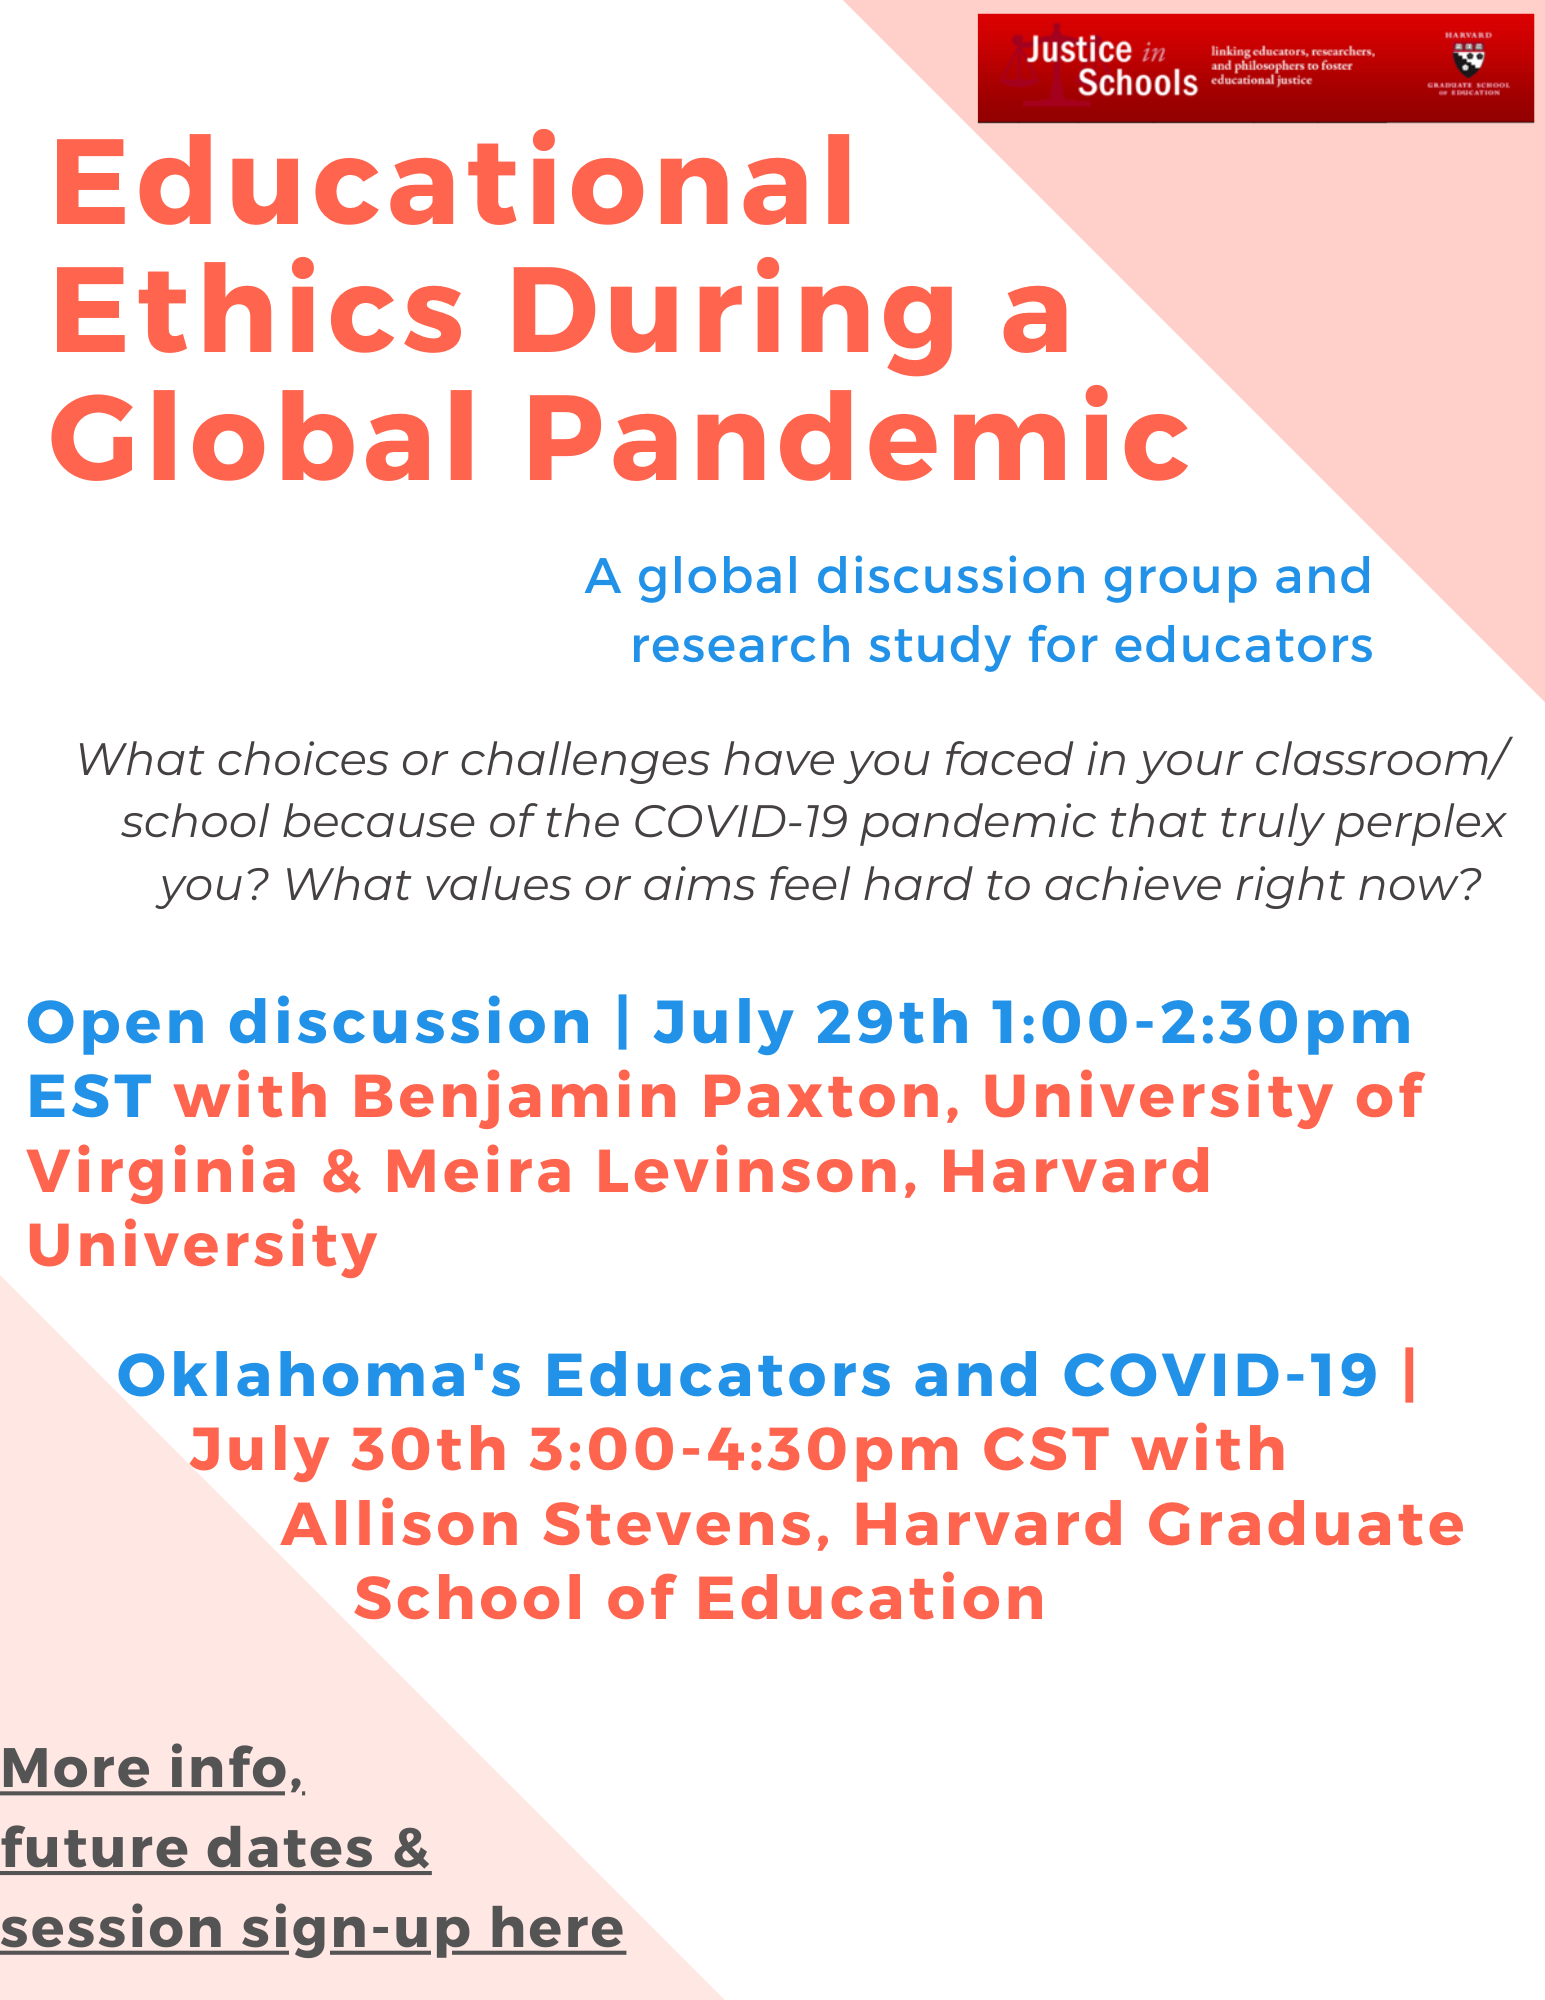 Educational Ethics in a Global Pandemic Flyer with Session Information